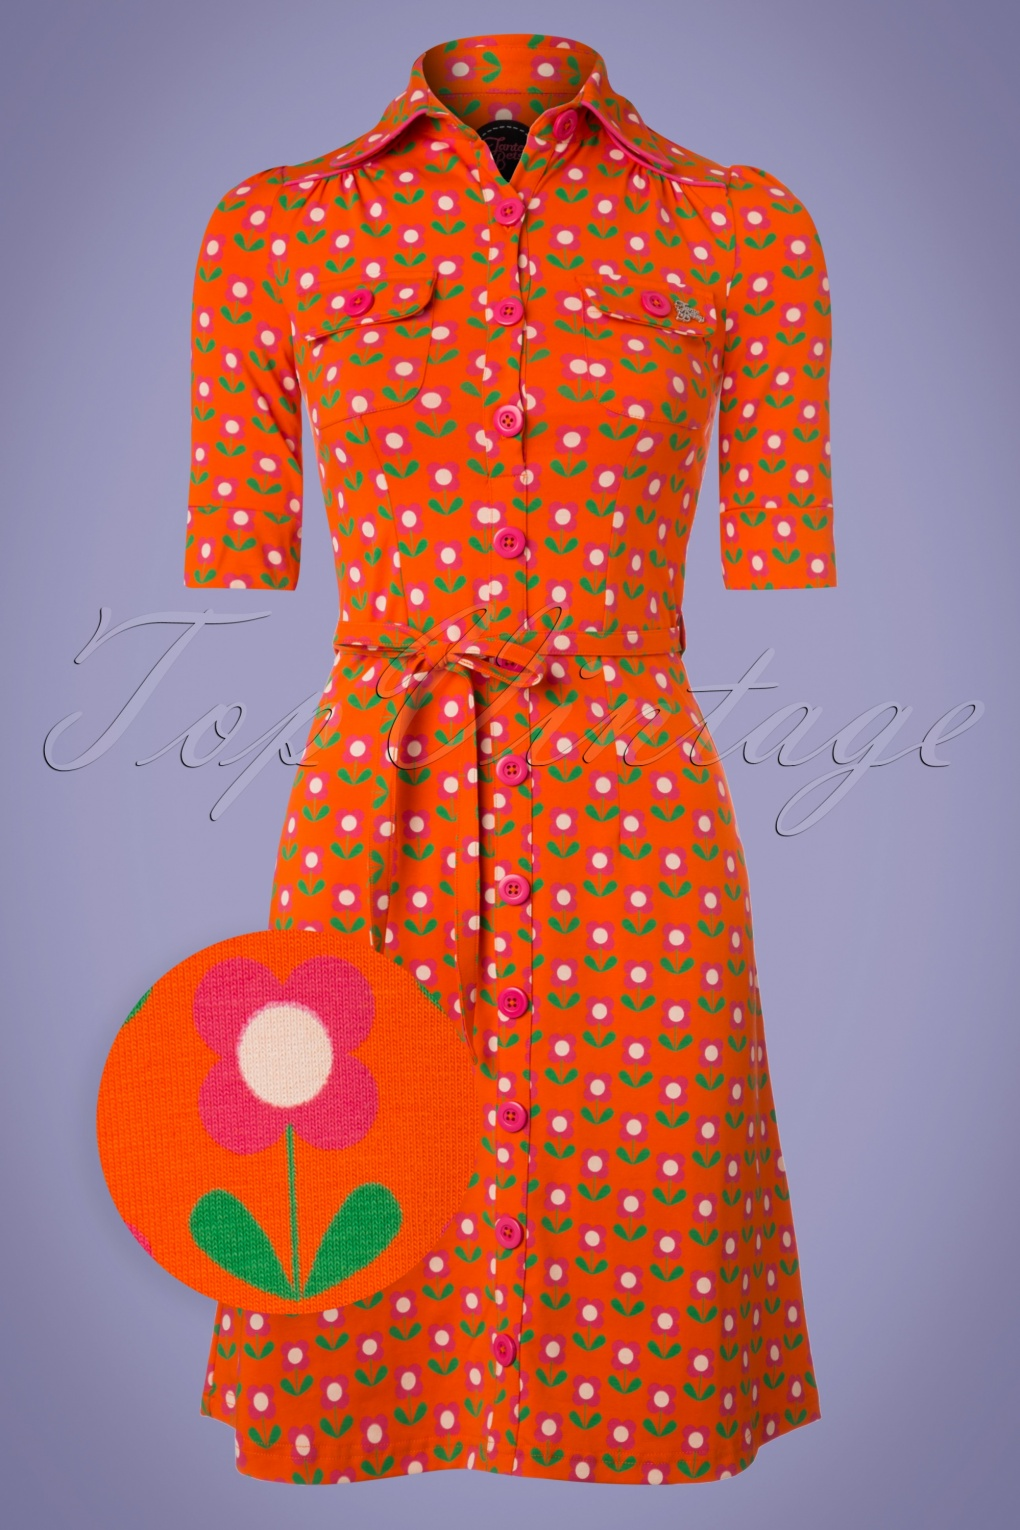 1960s Dresses – A Rainbow of 50 Dresses (Pictures) 60s Betsy Bloms Dress in Orange £78.03 AT vintagedancer.com